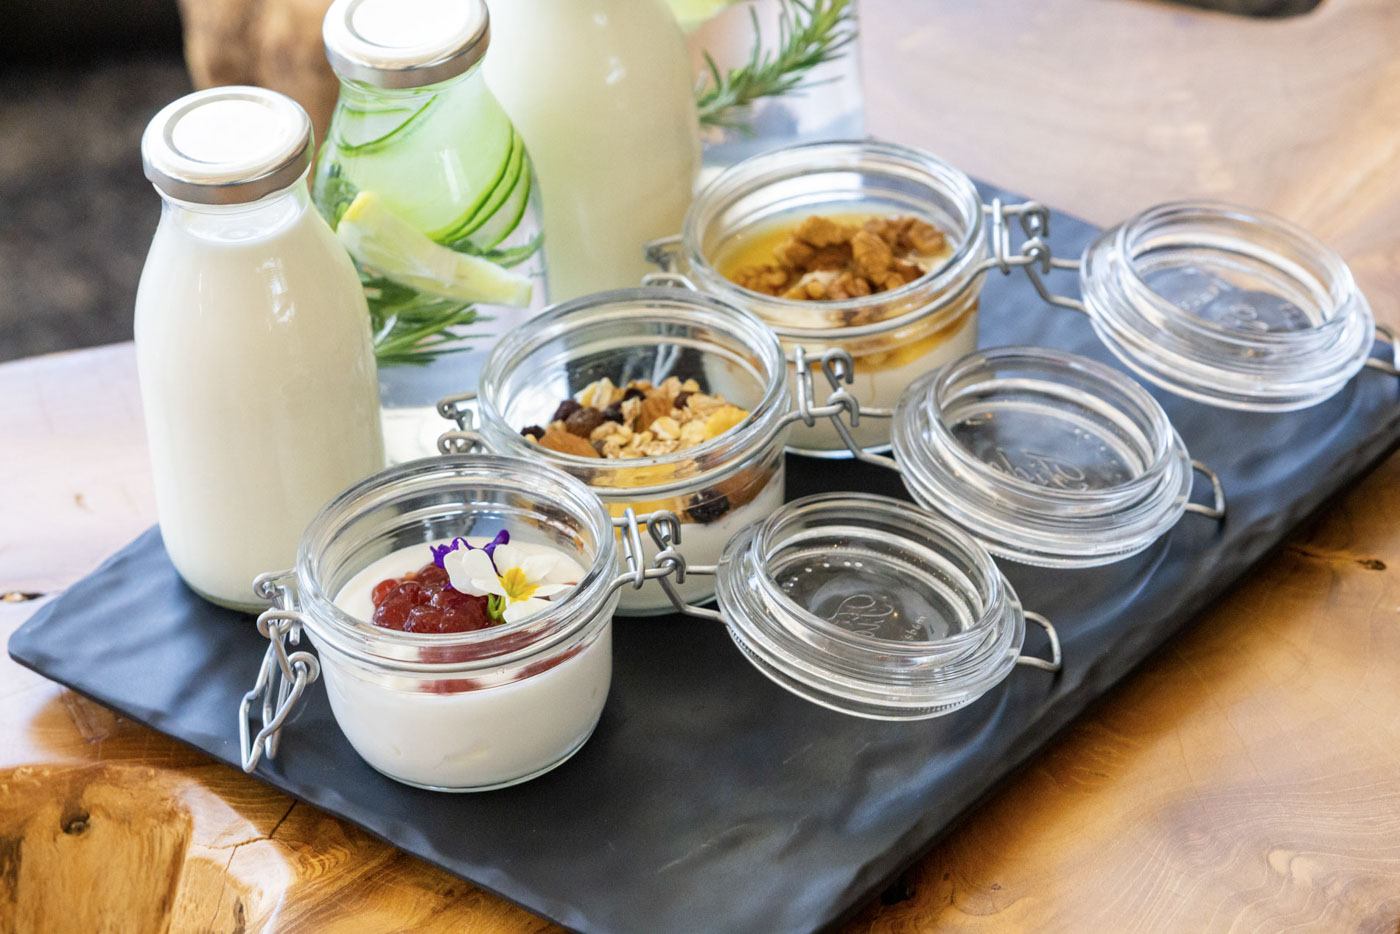 Elysian luxury hotel and spa Kalamata breakfast with yogurt